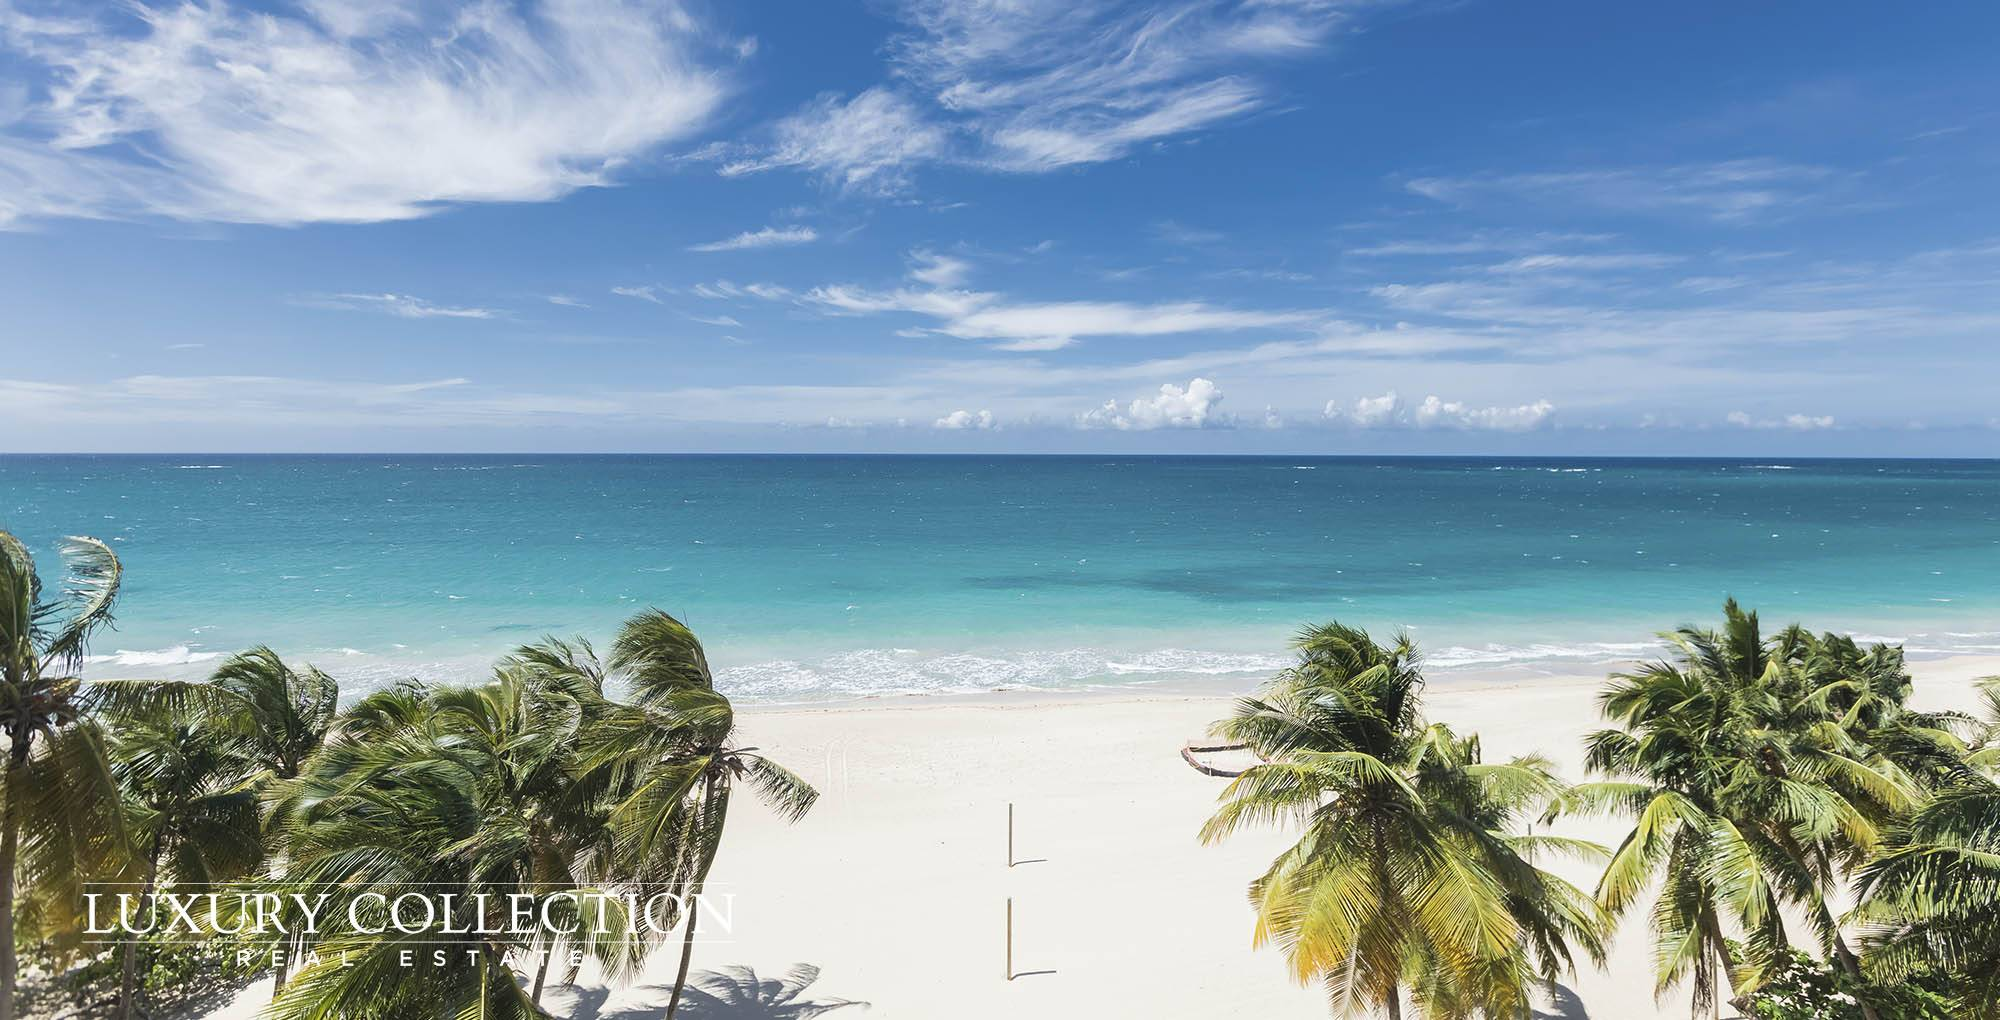 luxury collection real estate puerto rico this beachfront apartment for rent in Kings Court Playa has a direct ocean view. Kings Court Playa is a beach front building with direct access to the best beach in the area, Ocean Park beach.